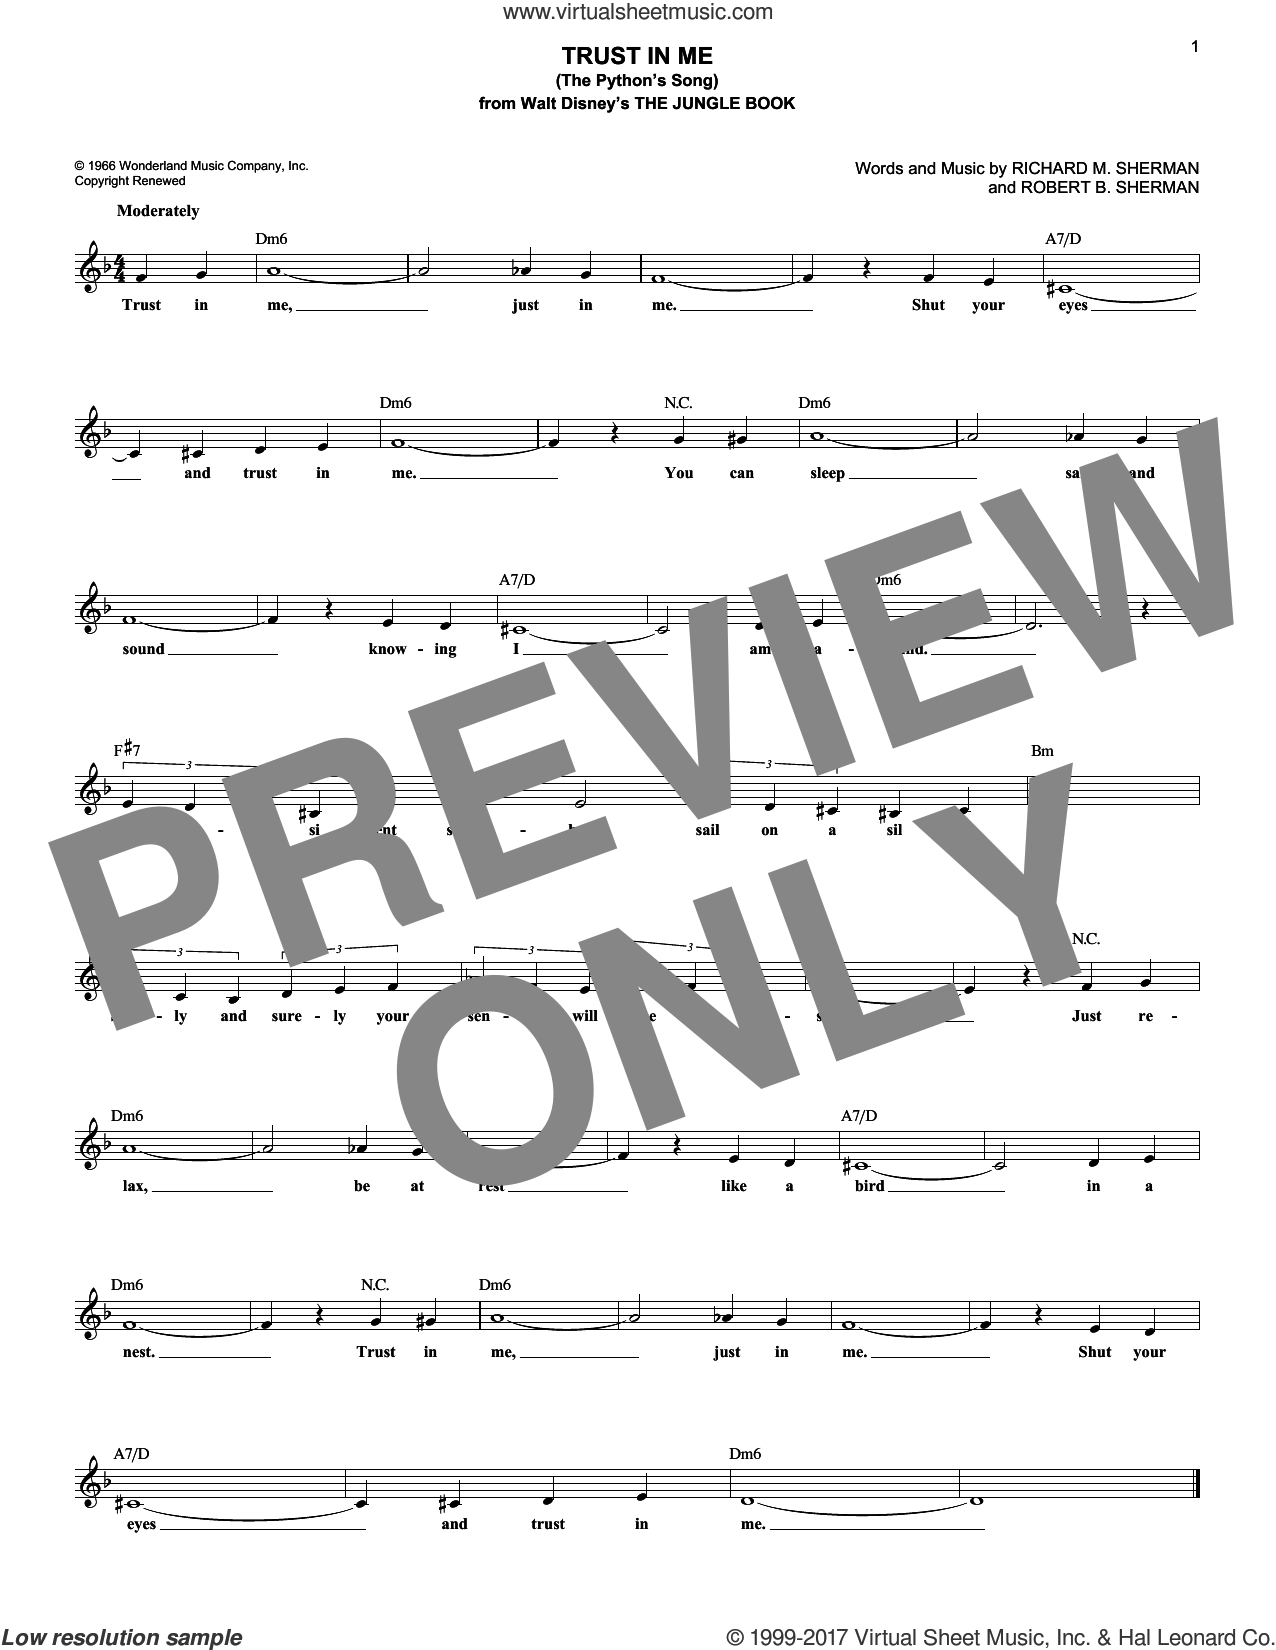 Trust In Me (The Python's Song) sheet music for voice and other instruments (fake book) by Robert B. Sherman and Richard M. Sherman, intermediate skill level